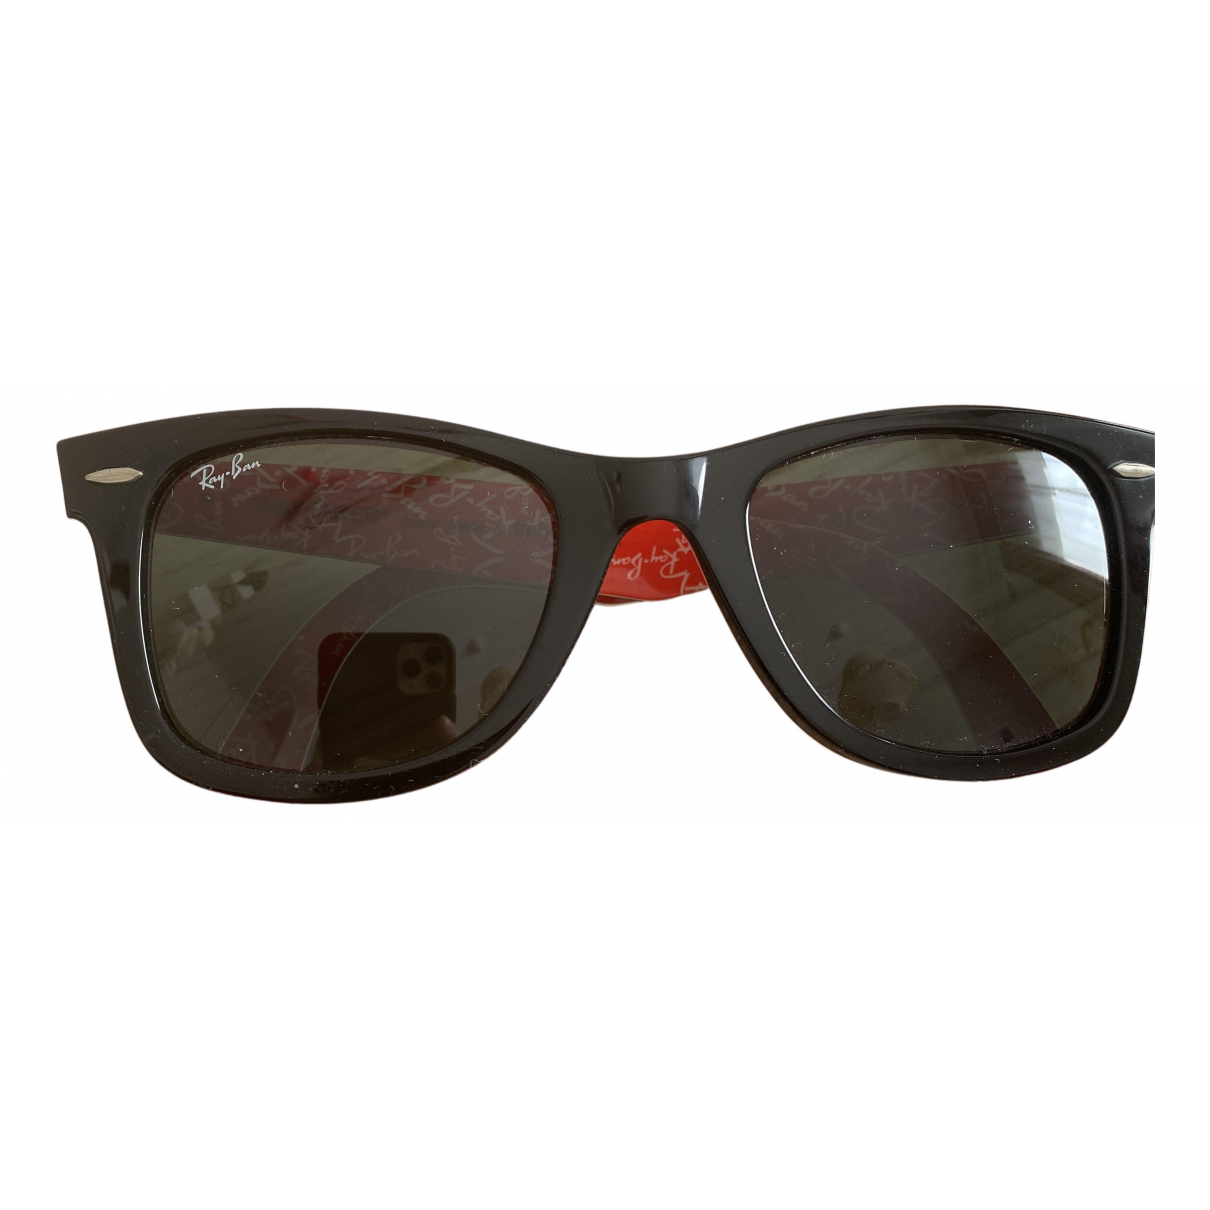 Ray-ban New Wayfarer Black Sunglasses for Women N